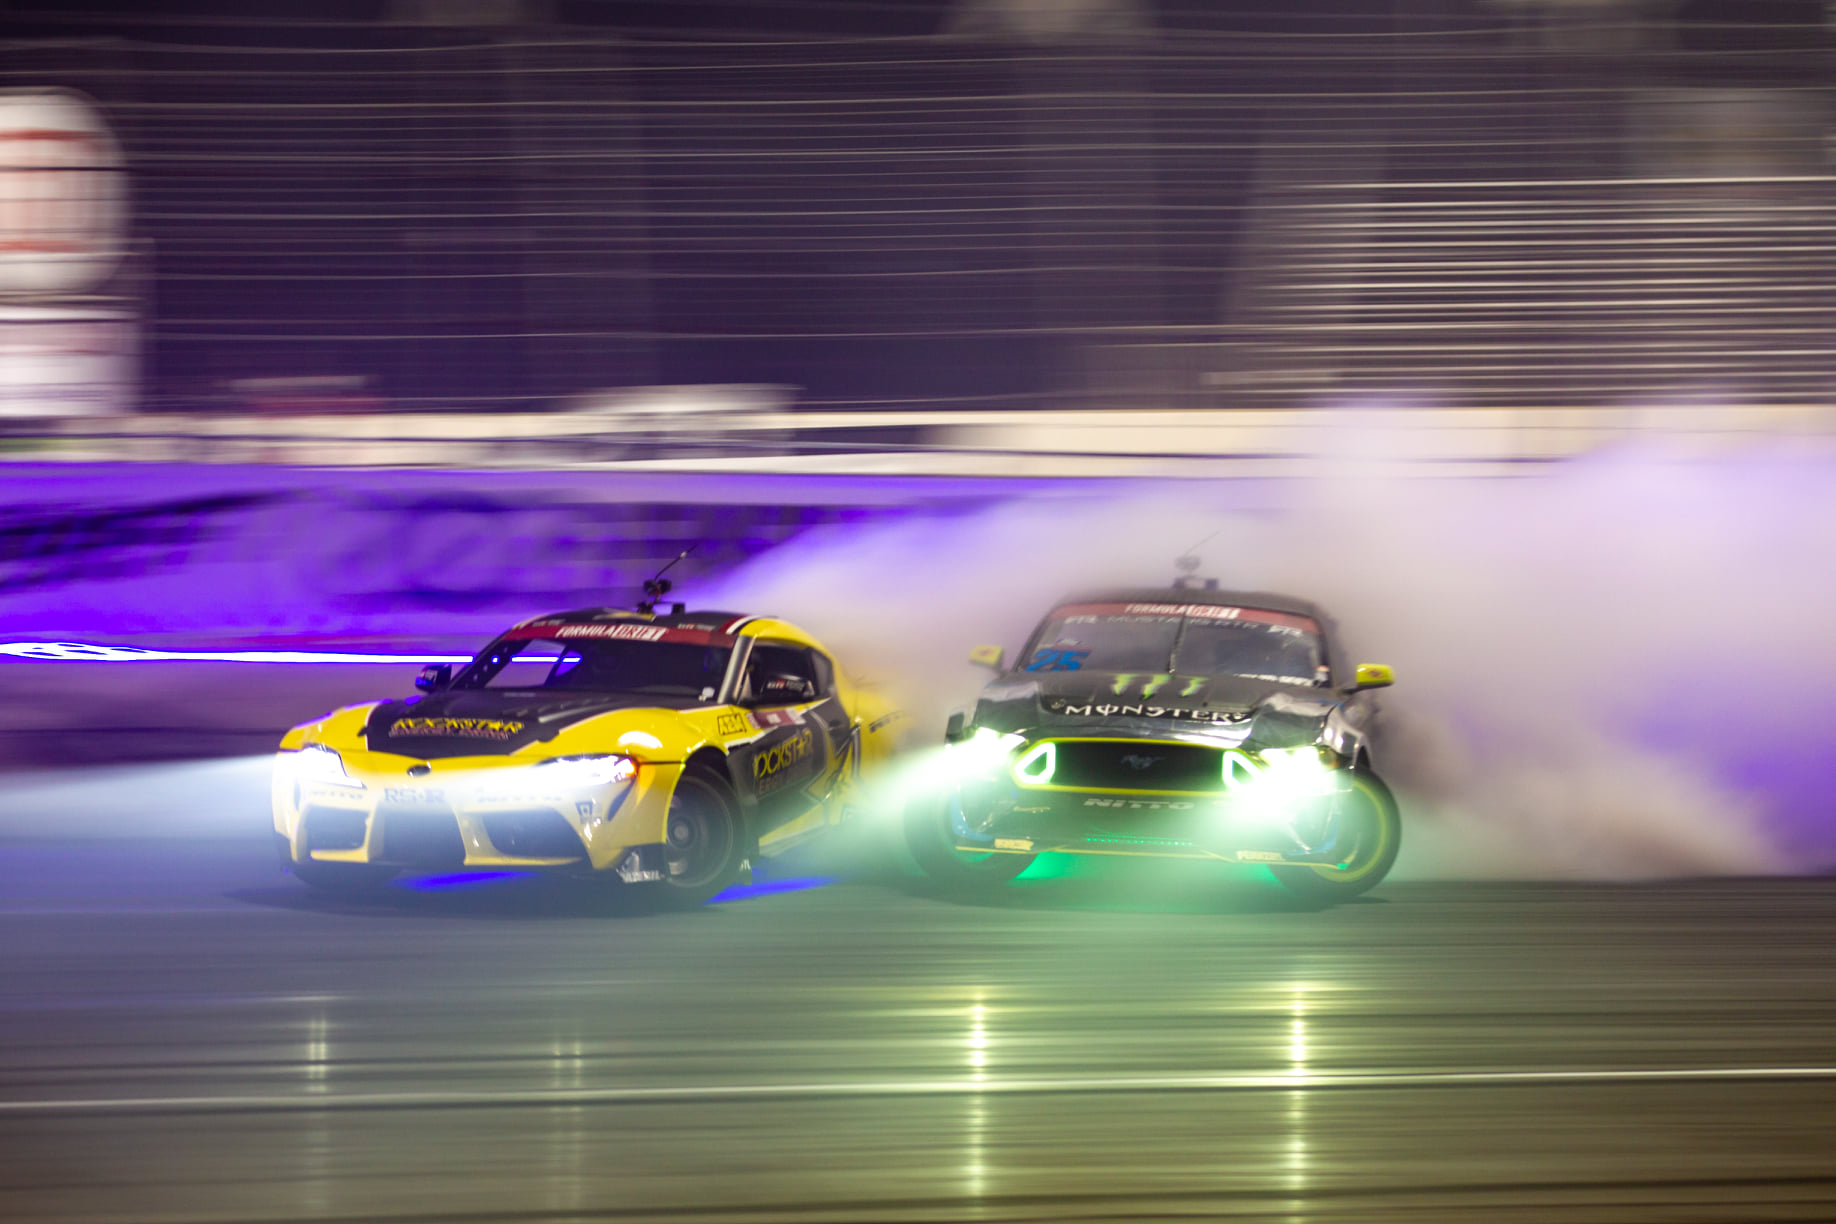 Frederick Aasbo leads Vaughn Gittin Jr at Irwindale Speedway. Photo by Sam Wissmann of Togue Culture.